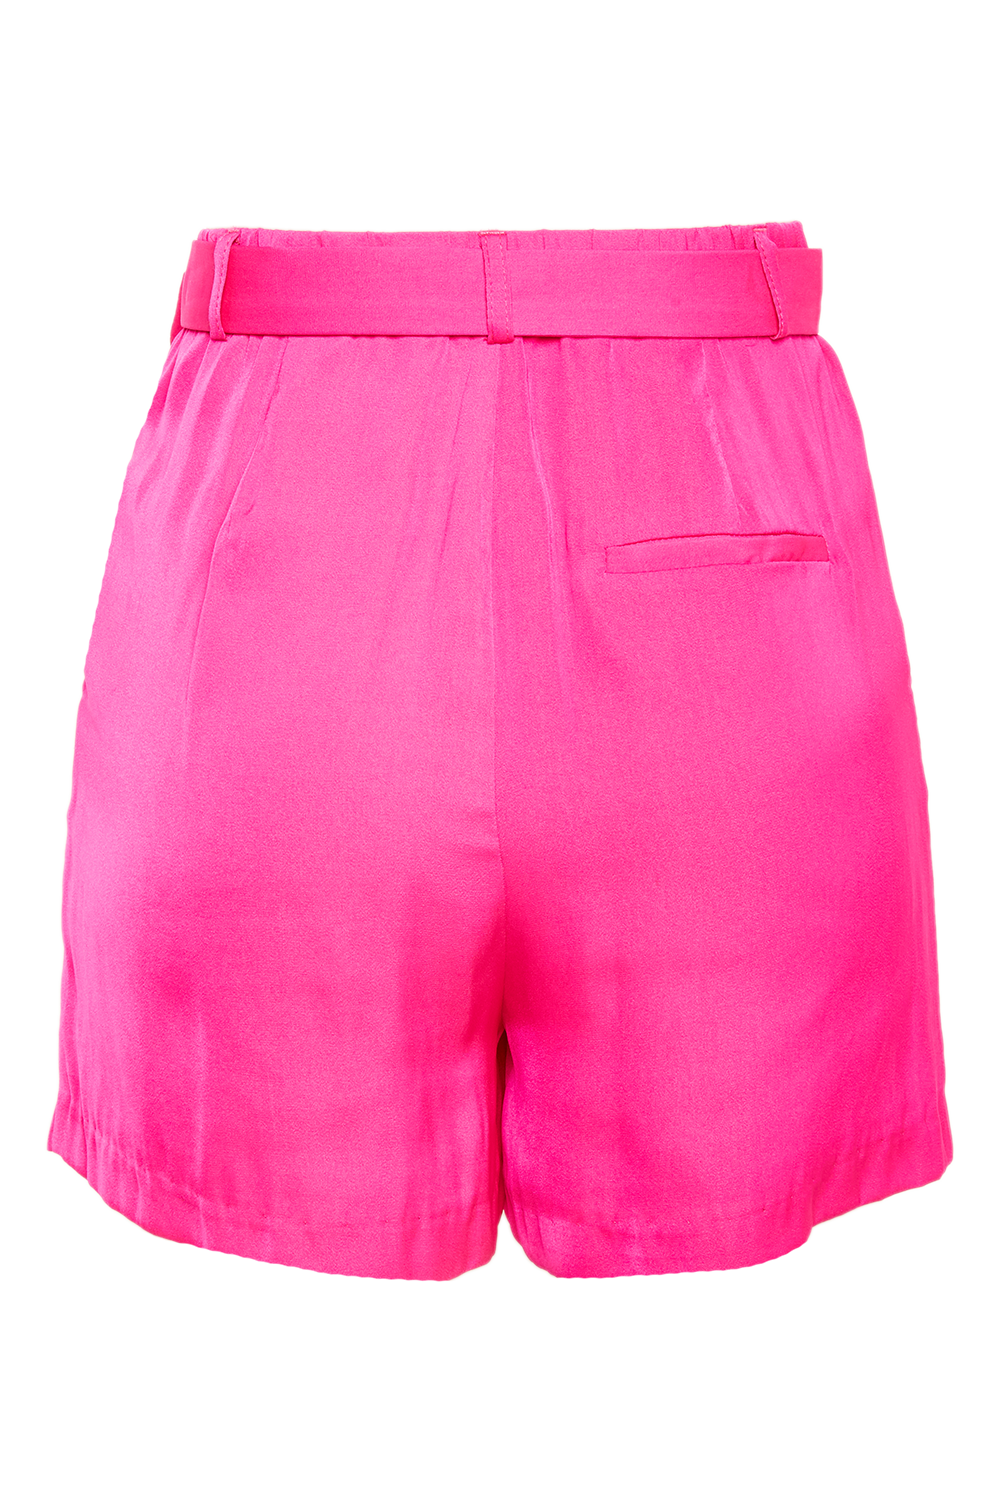 SEATTLE SHORT in colour SHOCKING PINK